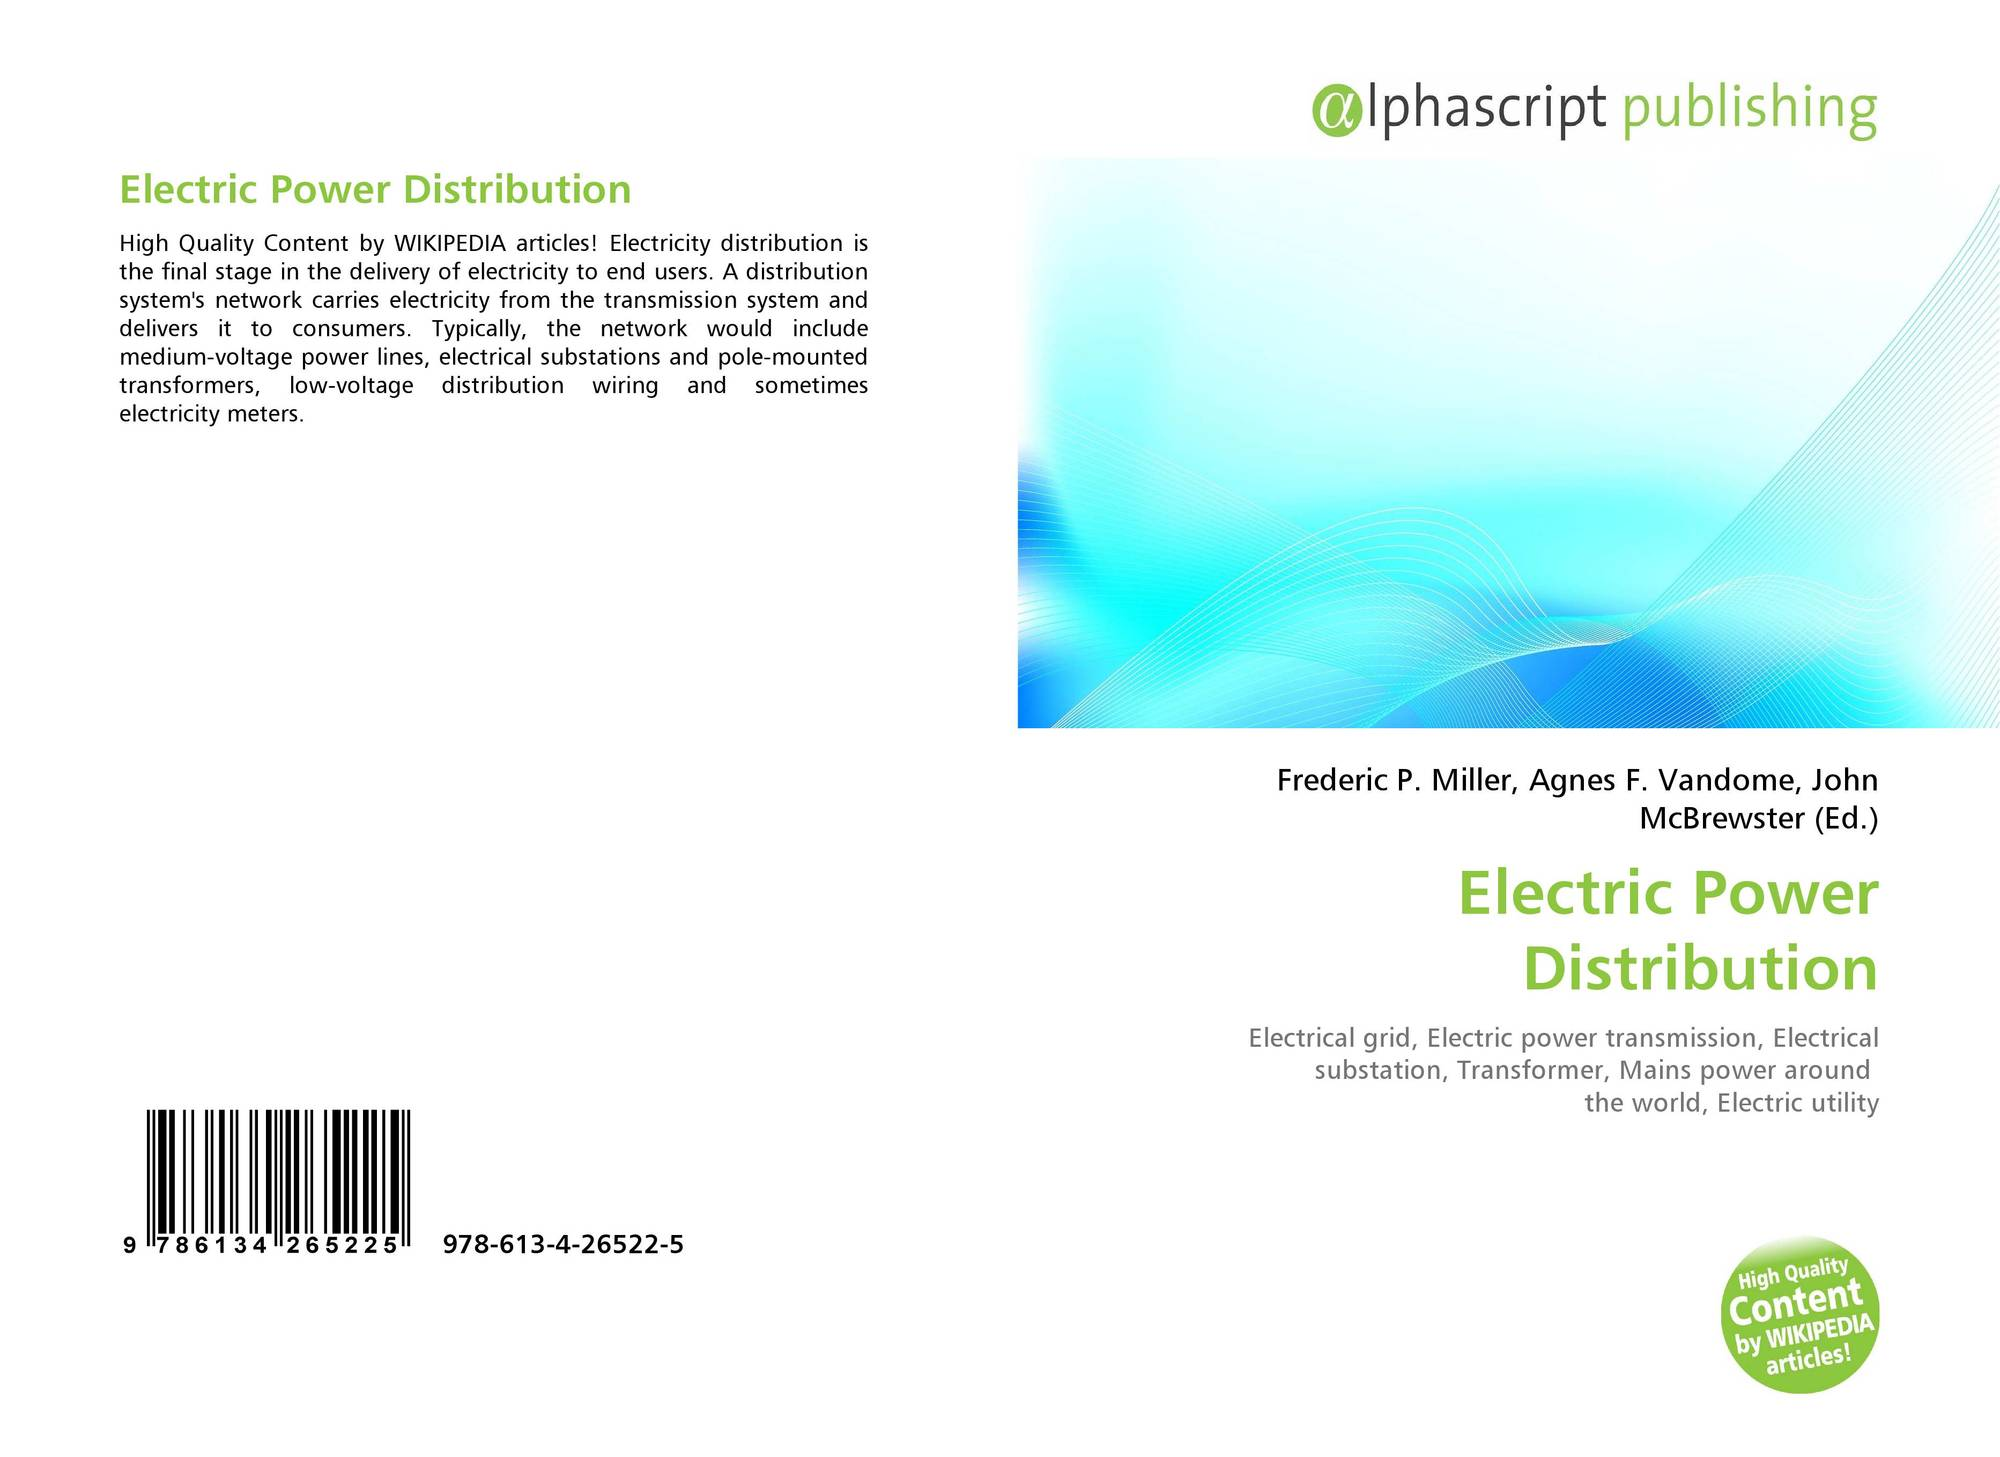 Electric Power Distribution, 978-613-4-26522-5, 6134265225